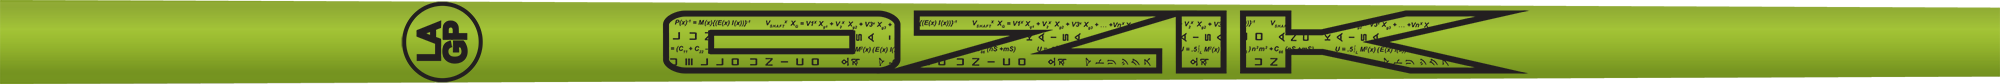 Ozik TPHDe: Lime Green Black Satin - Wood 71 XX